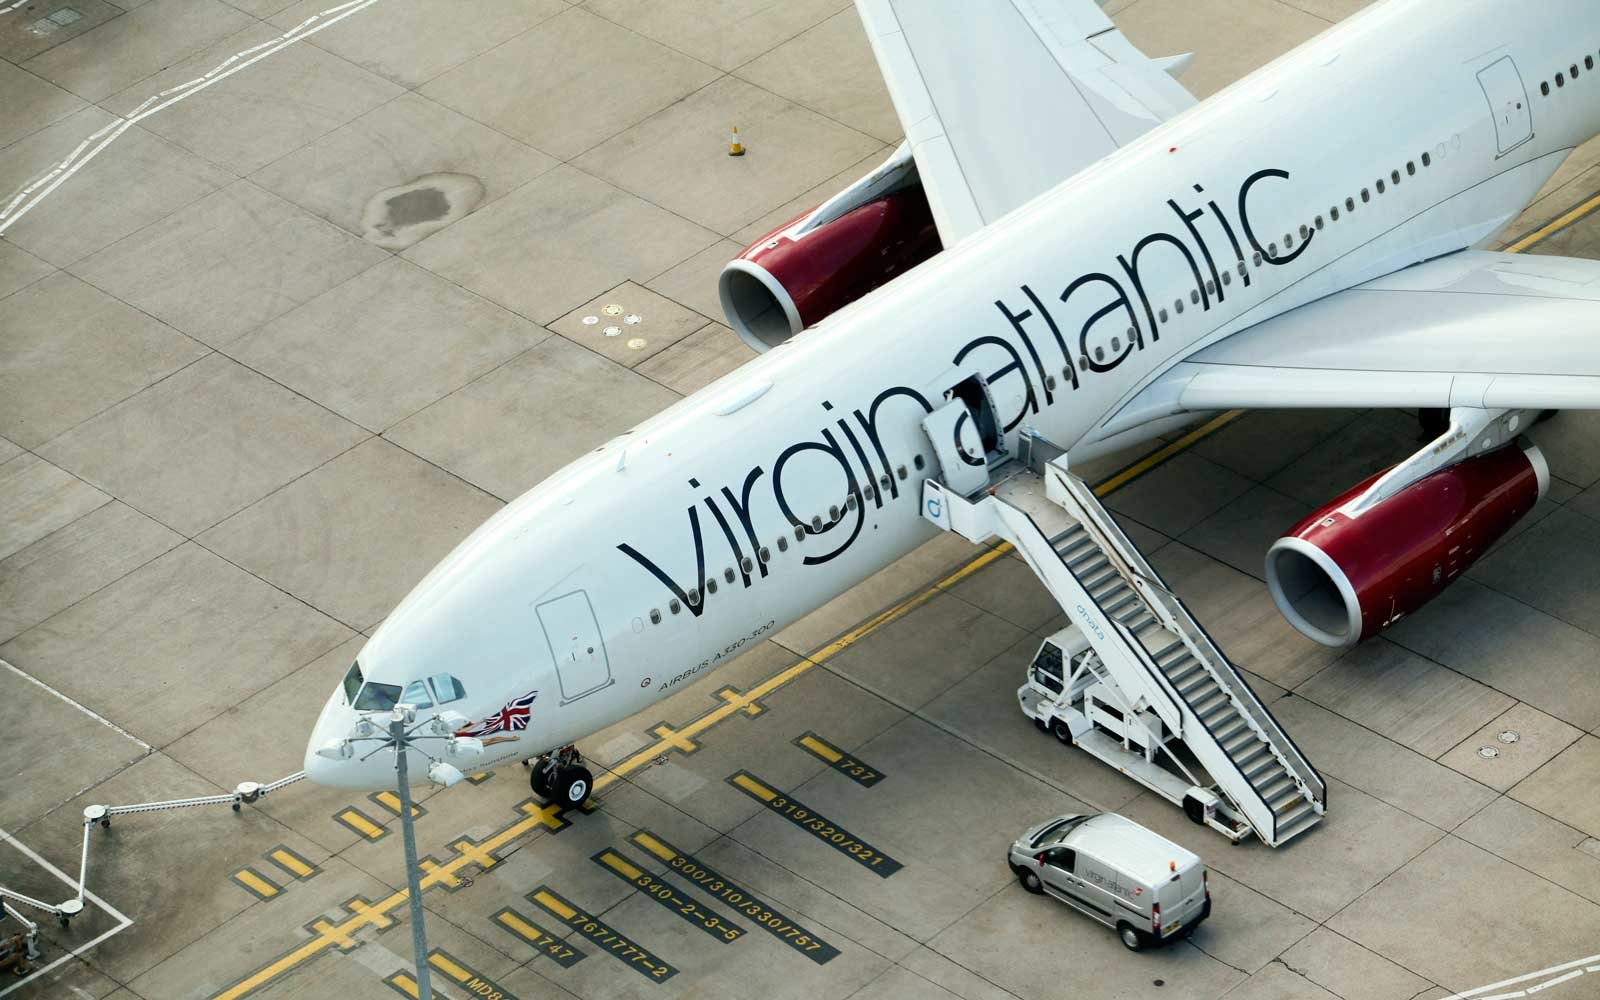 Virgin Atlantic Plane in Heathrow, London, UK